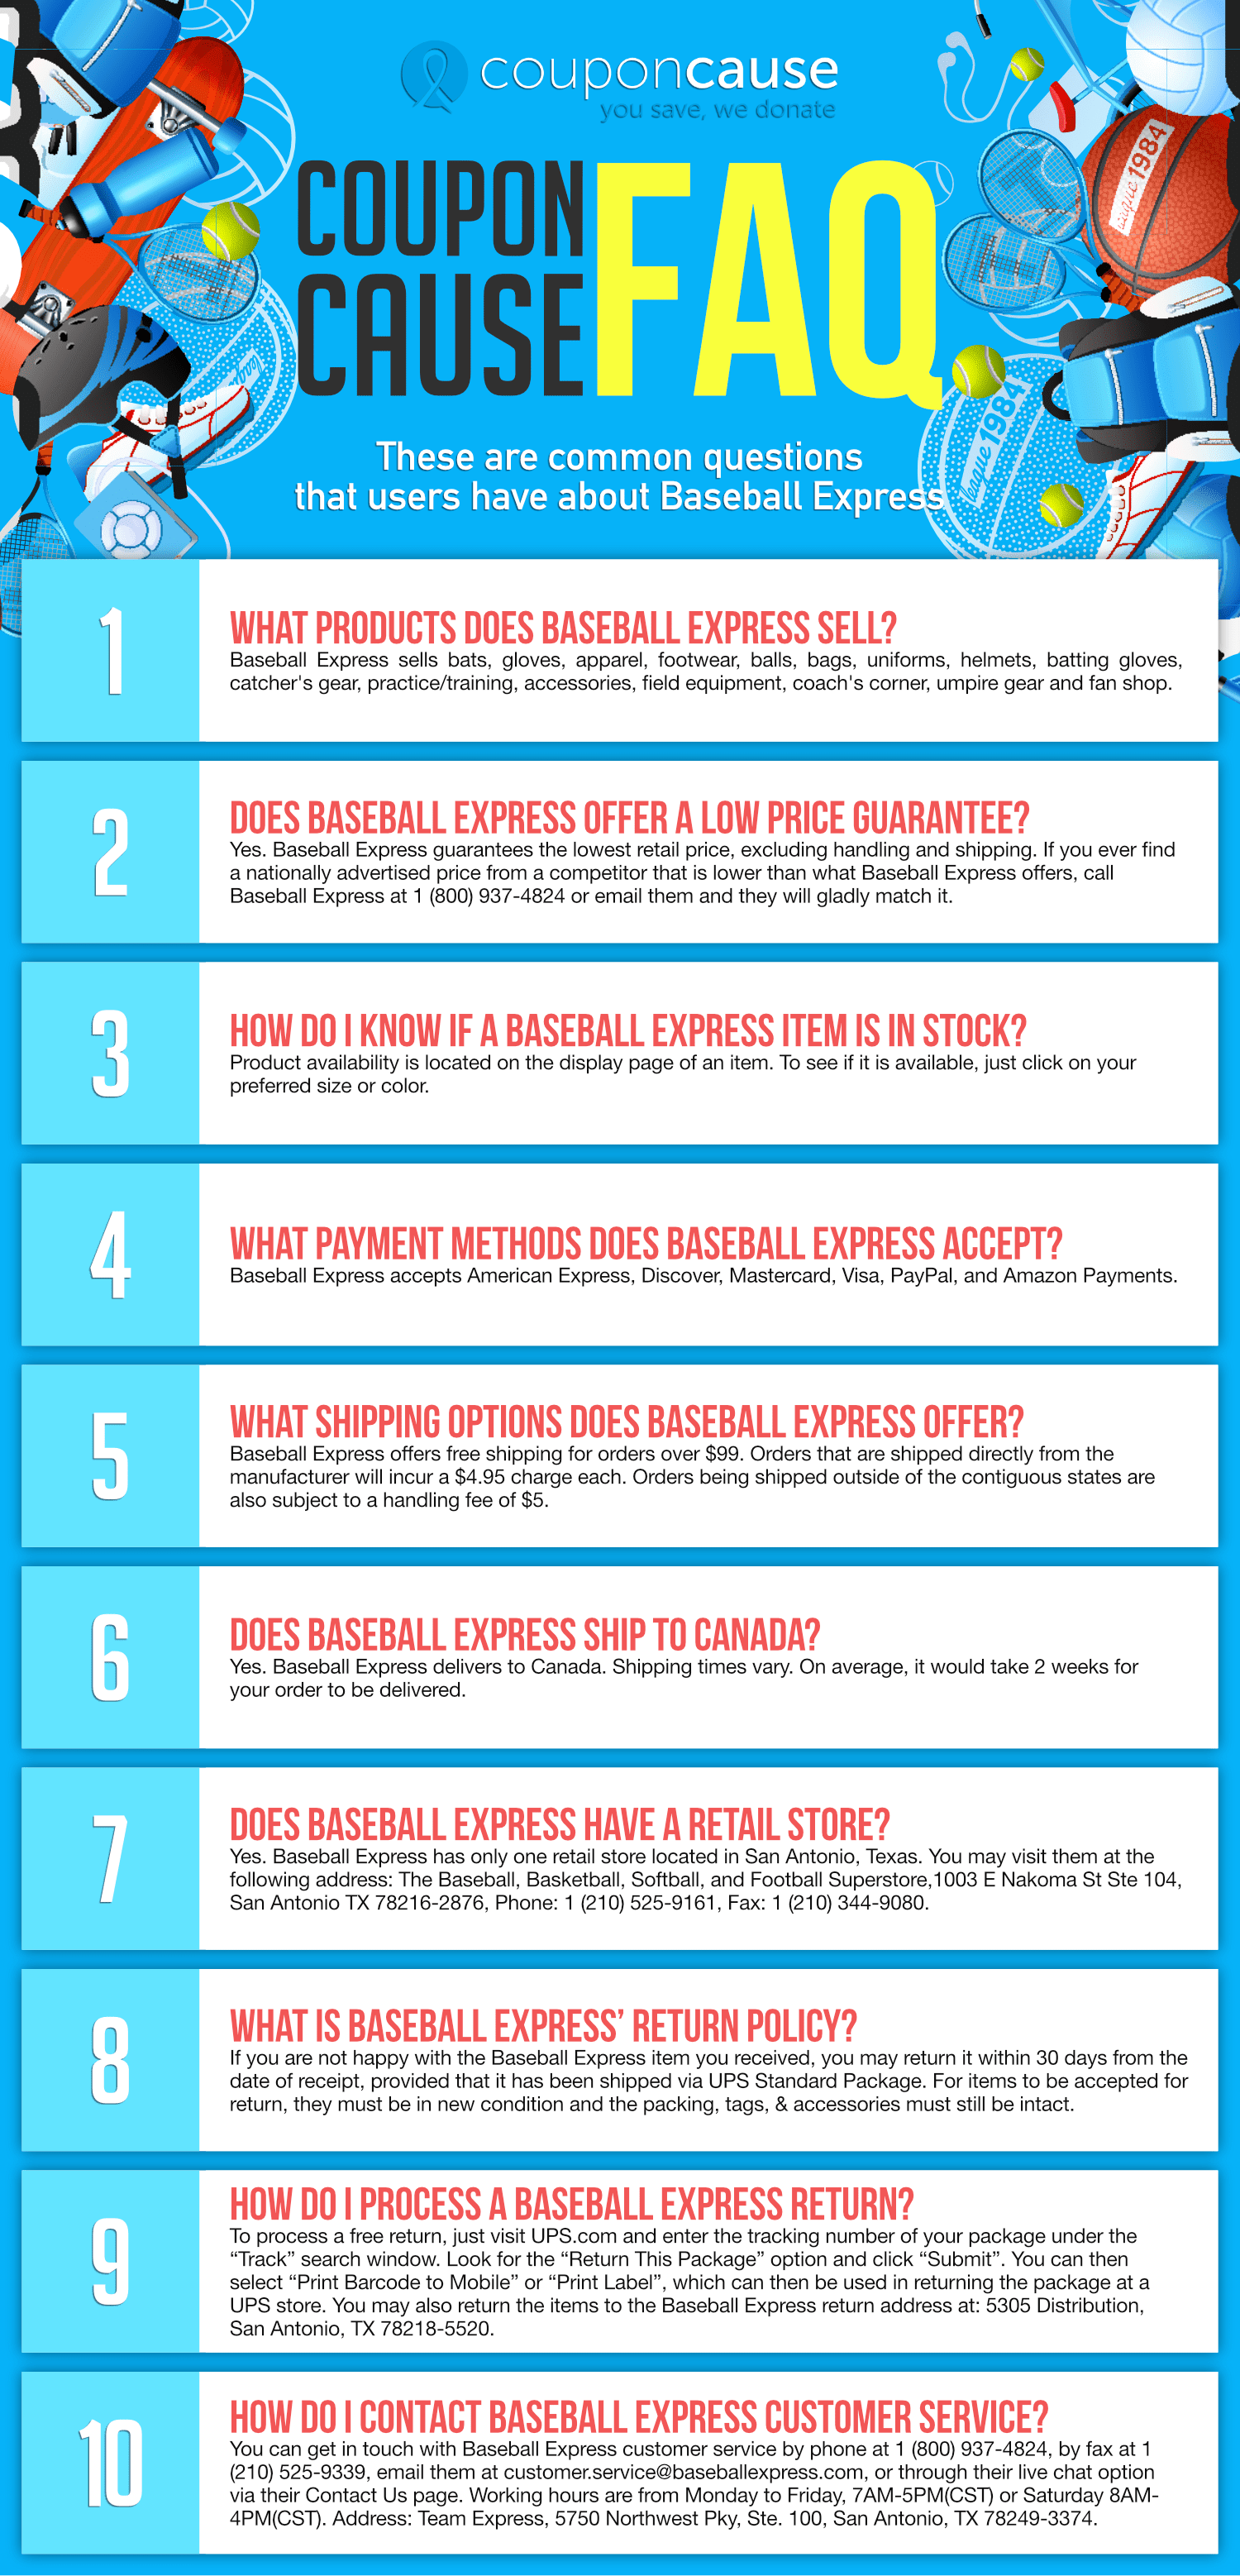 Baseball Express Coupon Cause FAQ (C.C. FAQ) Infographic